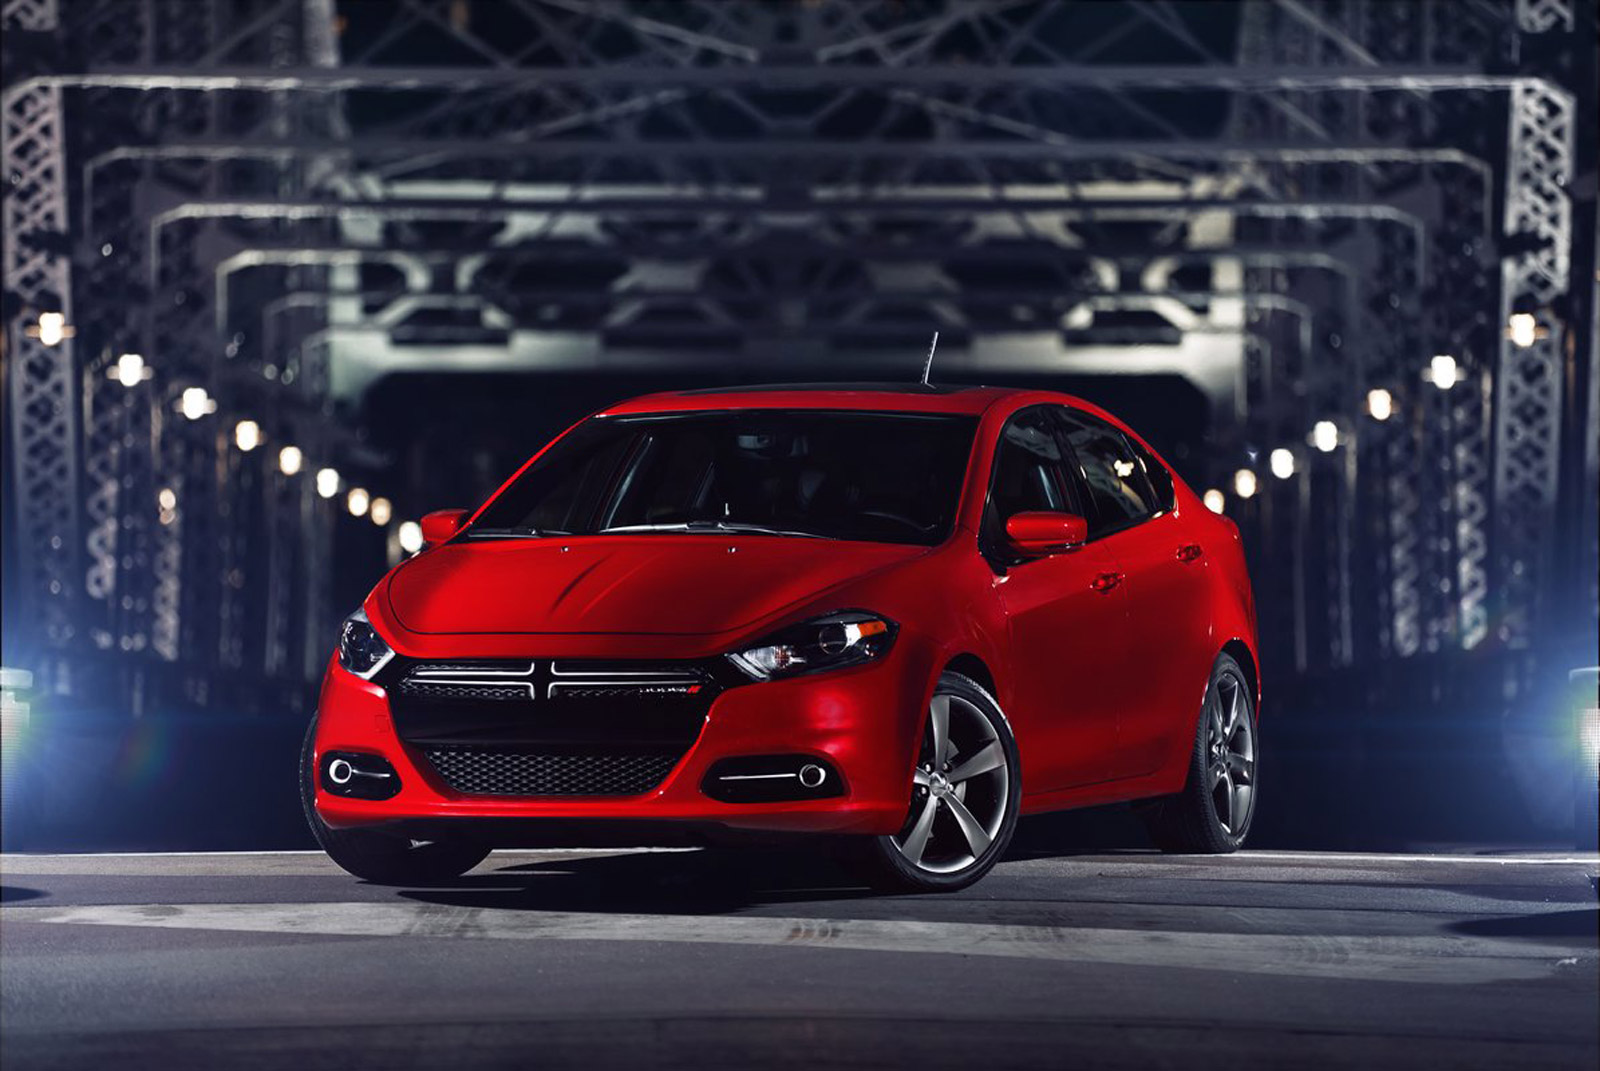 2013 Dodge Dart GT: Sharper And Racier, But How Much Faster?